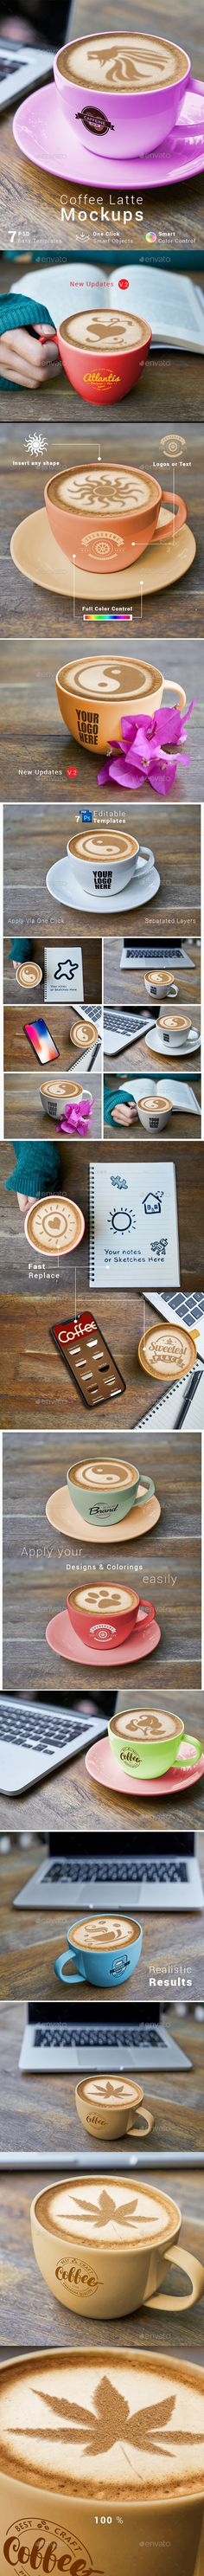 Buy Coffee Latte Mockups by Media_Variety on GraphicRiver. Premium Coffee Mousse art cup mock-up pack for web or presentations imaging , hero images , sliders , and prints , f. Coffee Latte Art, Coffee Coffee, Coffee Mousse, Board Game Design, Premium Coffee, Cup Art, Vector Shapes, Mocca, Photoshop